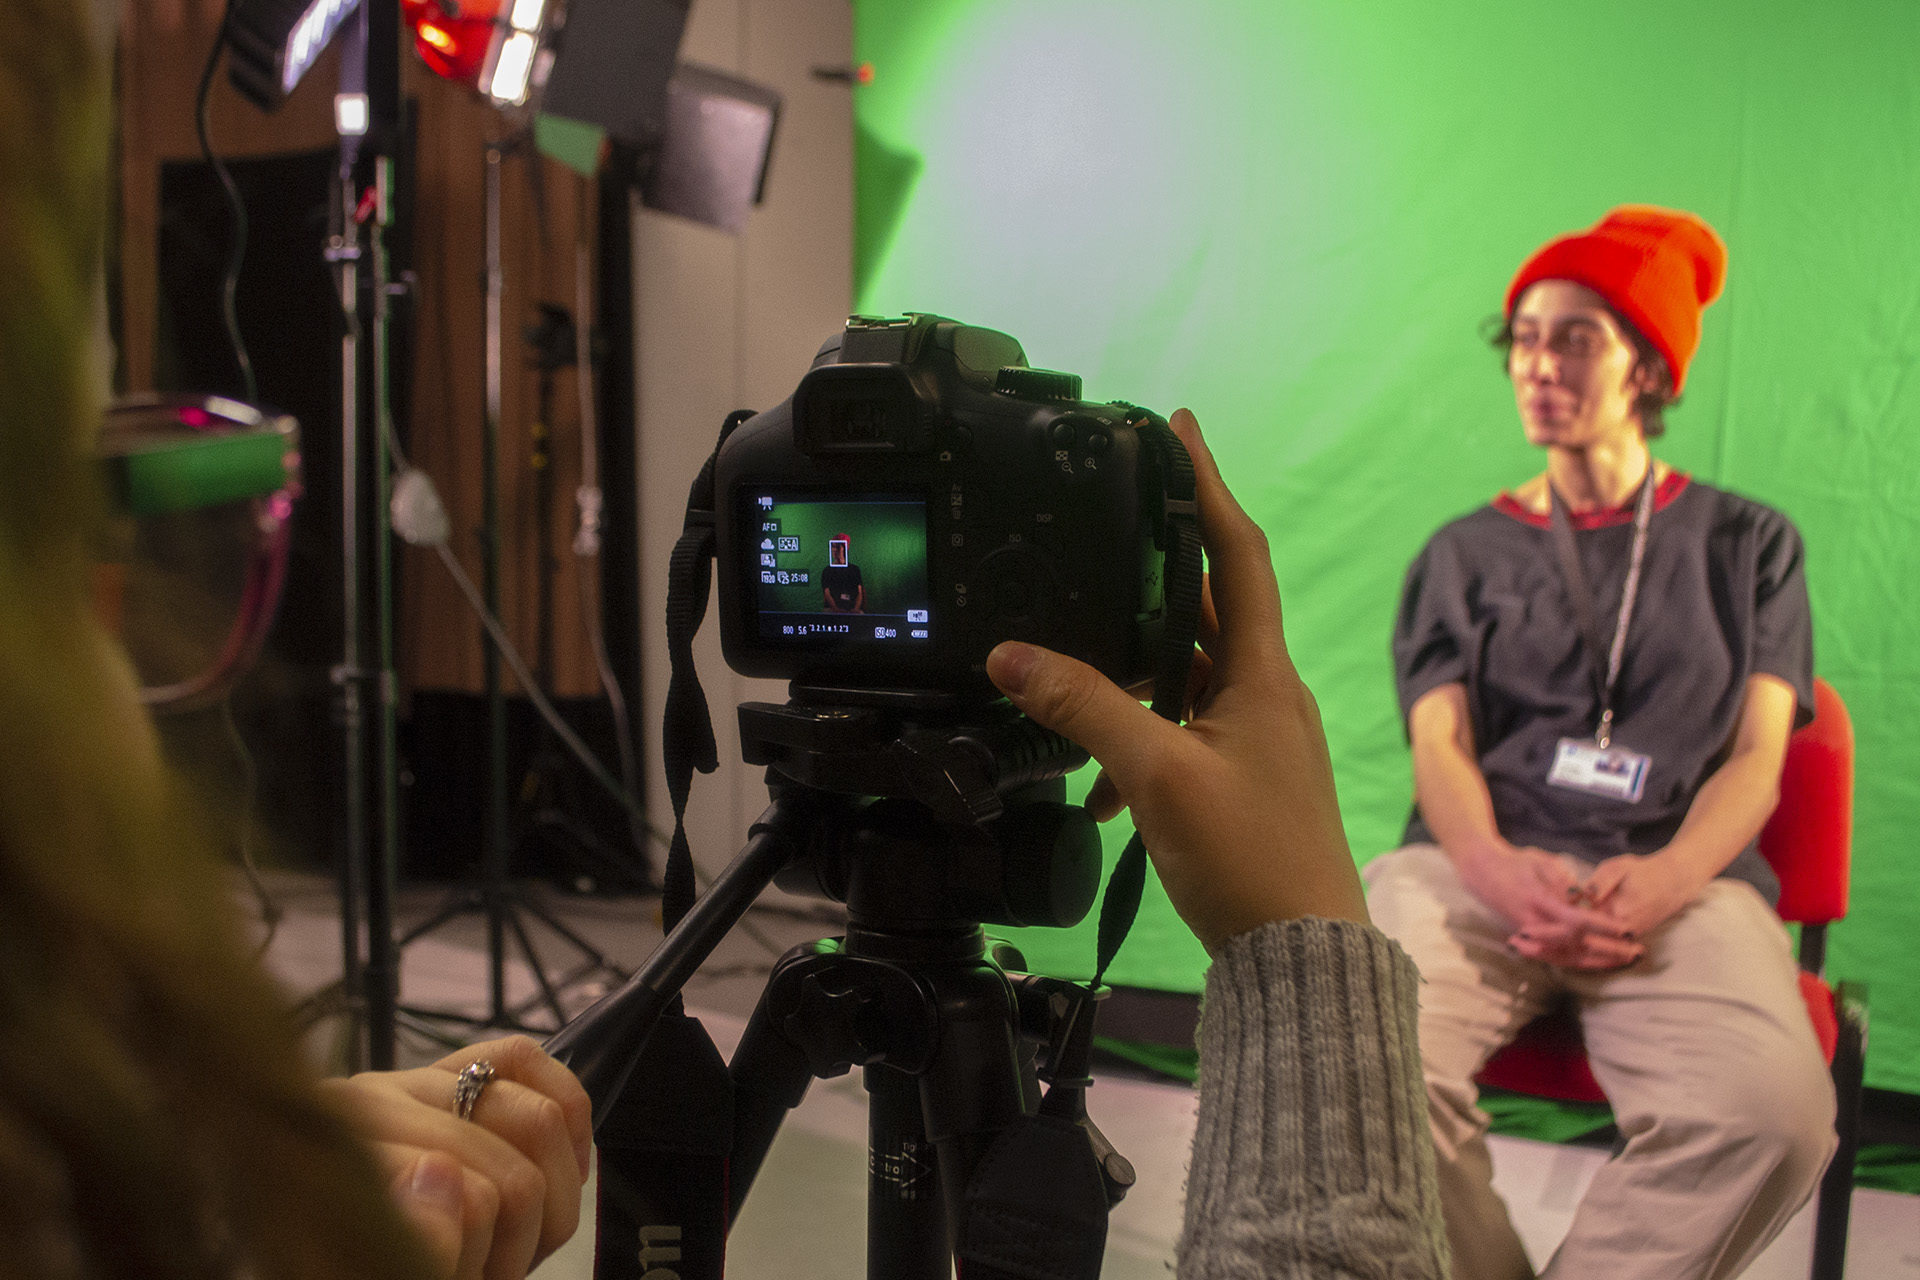 Creative Media. Student filming on green screen